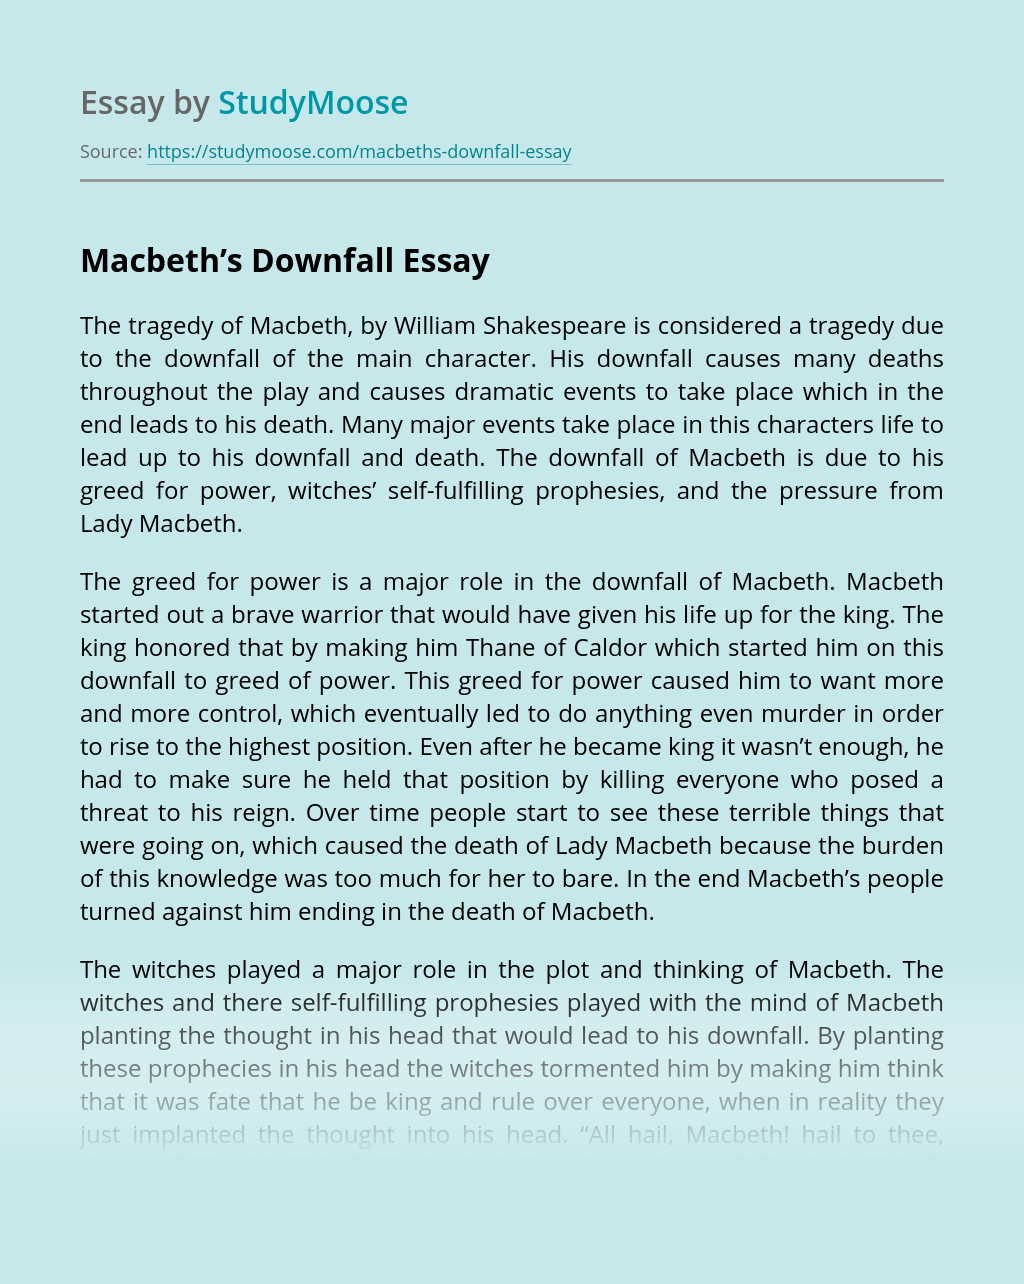 Macbeth's Downfall